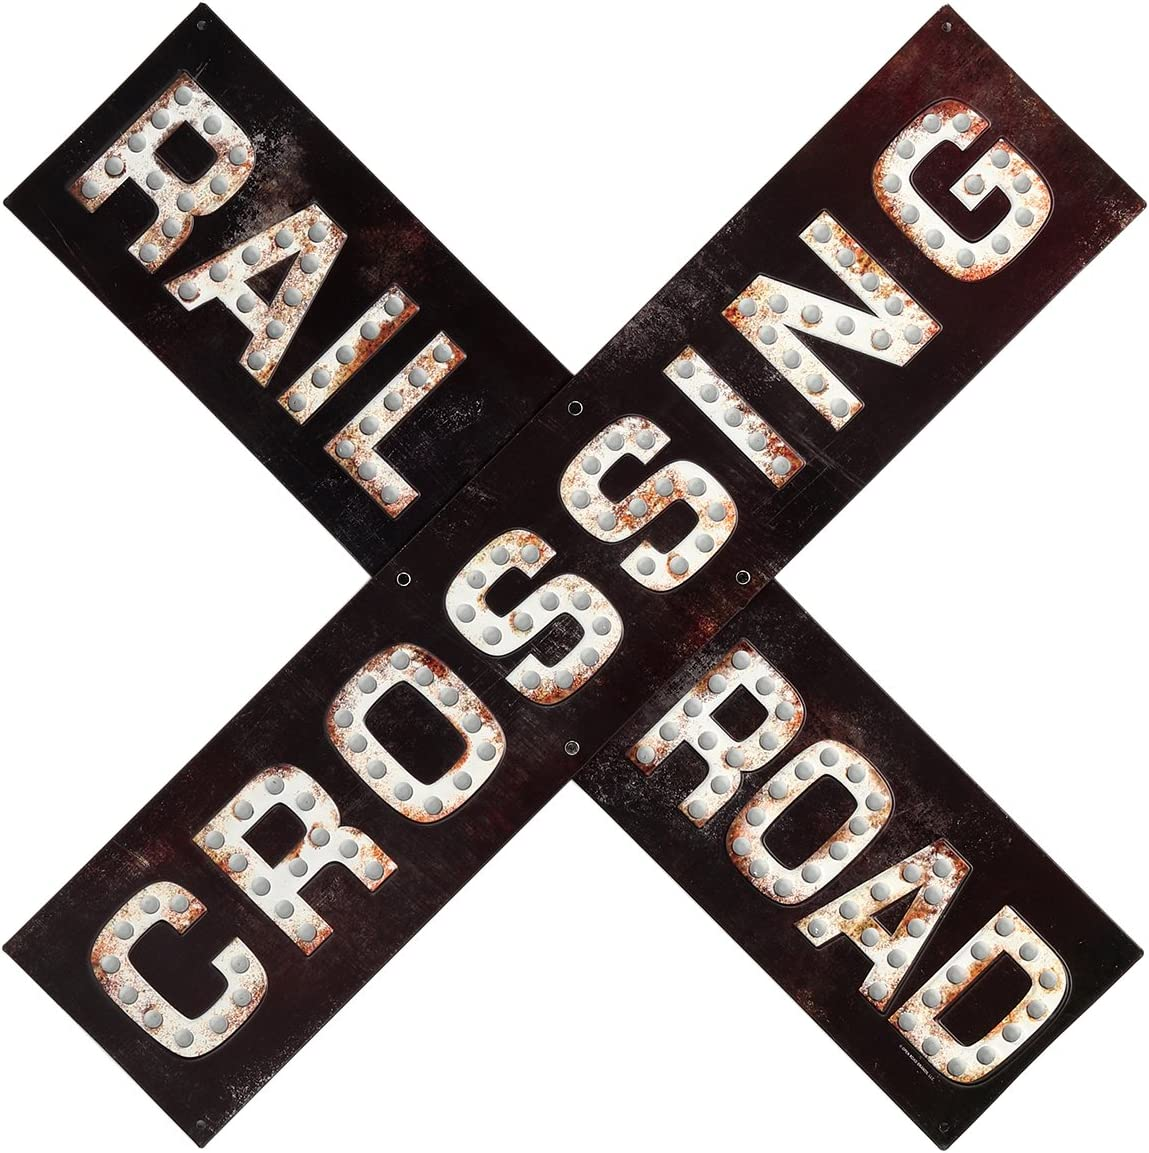 Open Road Brands Railroad Crossing Prismatic Embossed Metal Sign - an Officially Licensed Product Great Addition to Add What You Love to Your Home/Garage Decor